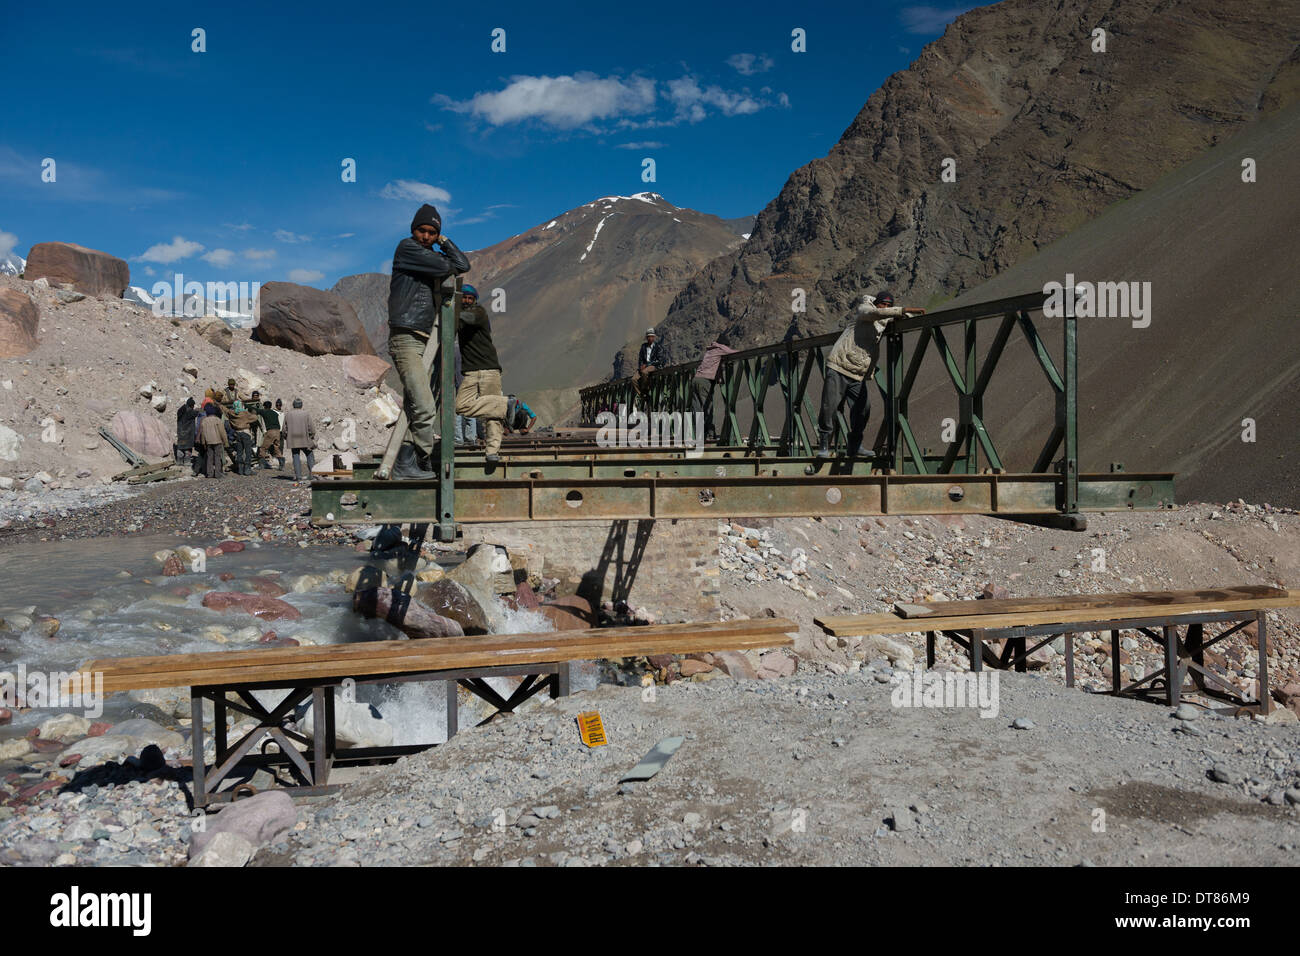 Labourers repairing a Bailey Bridge which was washed away by a flood, on the Leh-Manali Highway, Himachal Pradesh, India - Stock Image